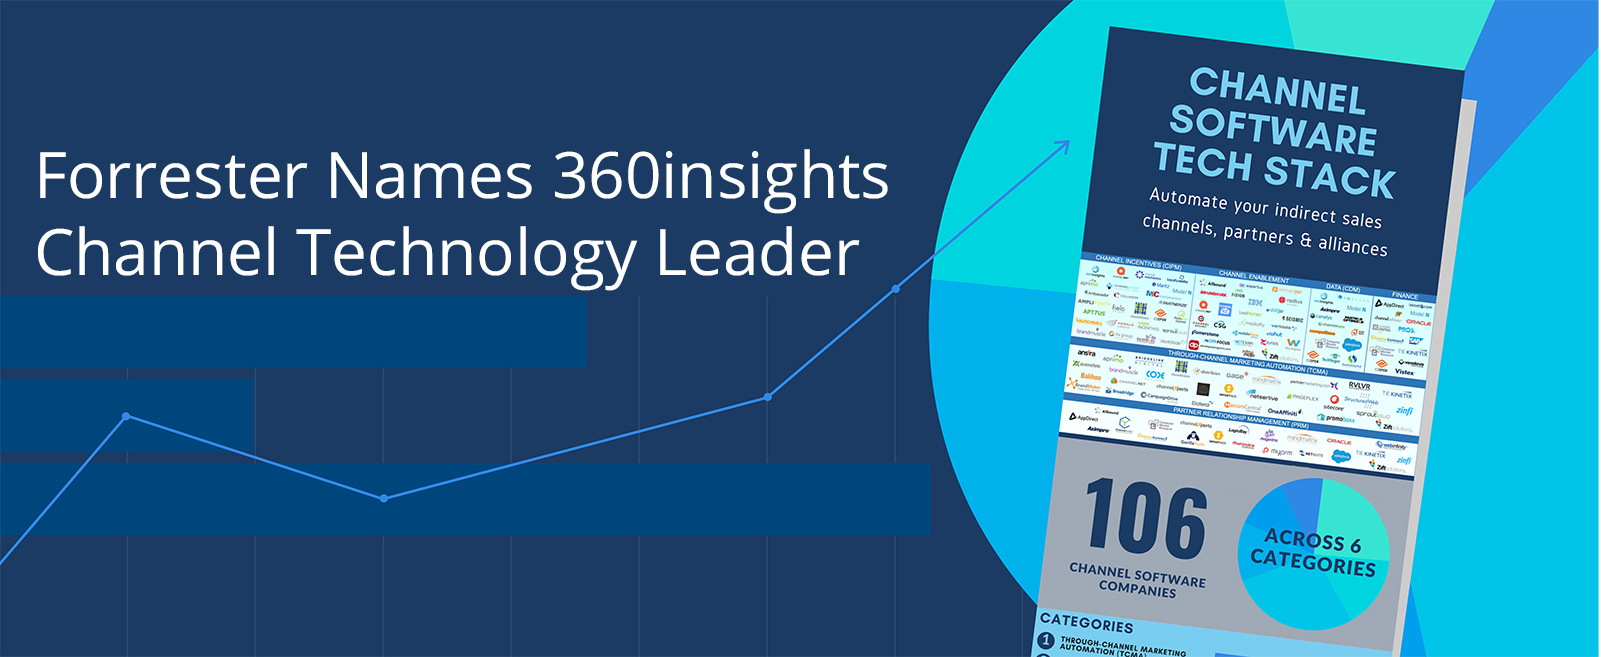 Forrester Names 360insights A Channel Technology Leader